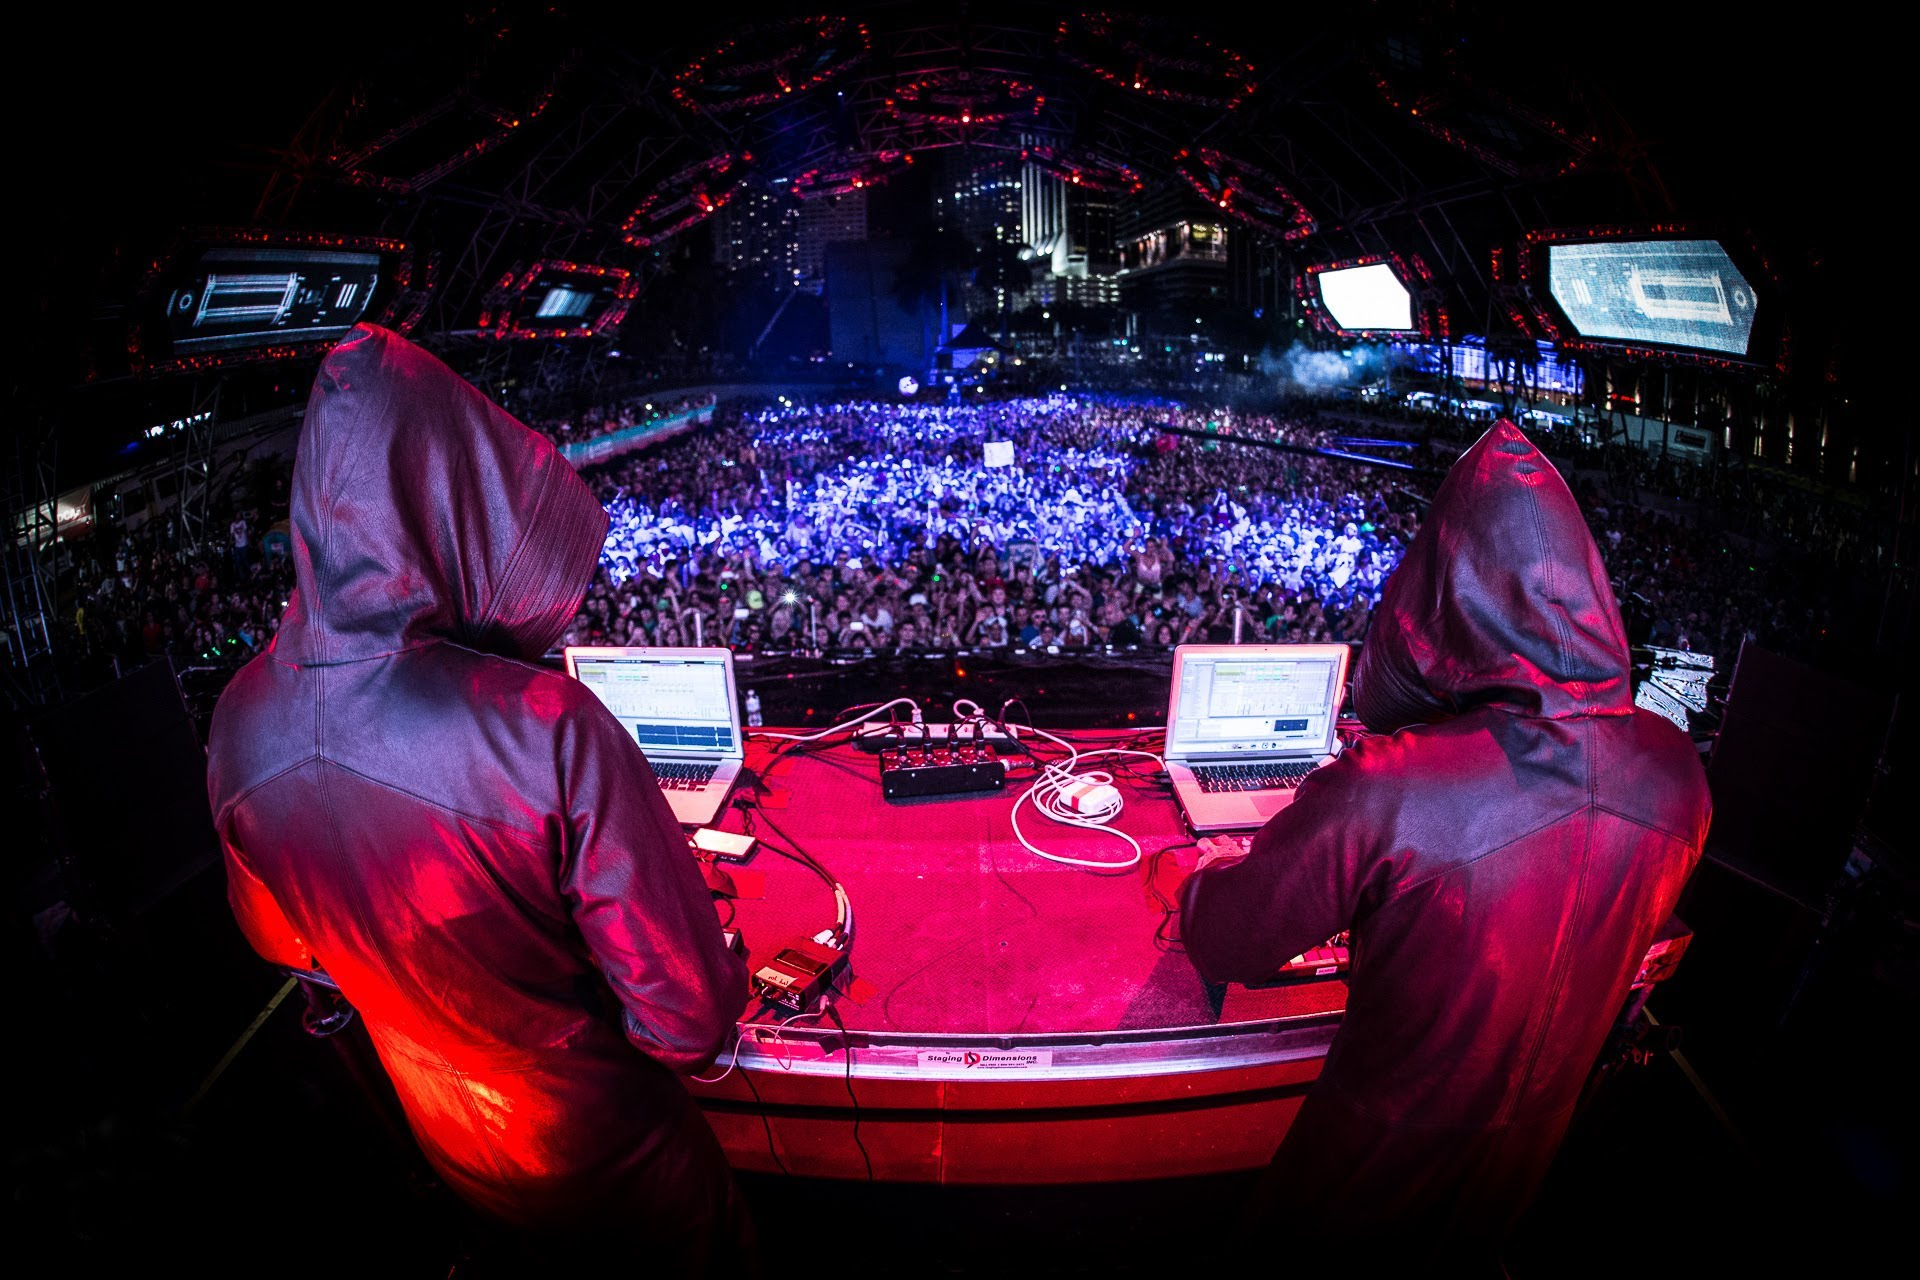 Gaia live at A State Of Trance 650 / Ultra Music Festival 2014